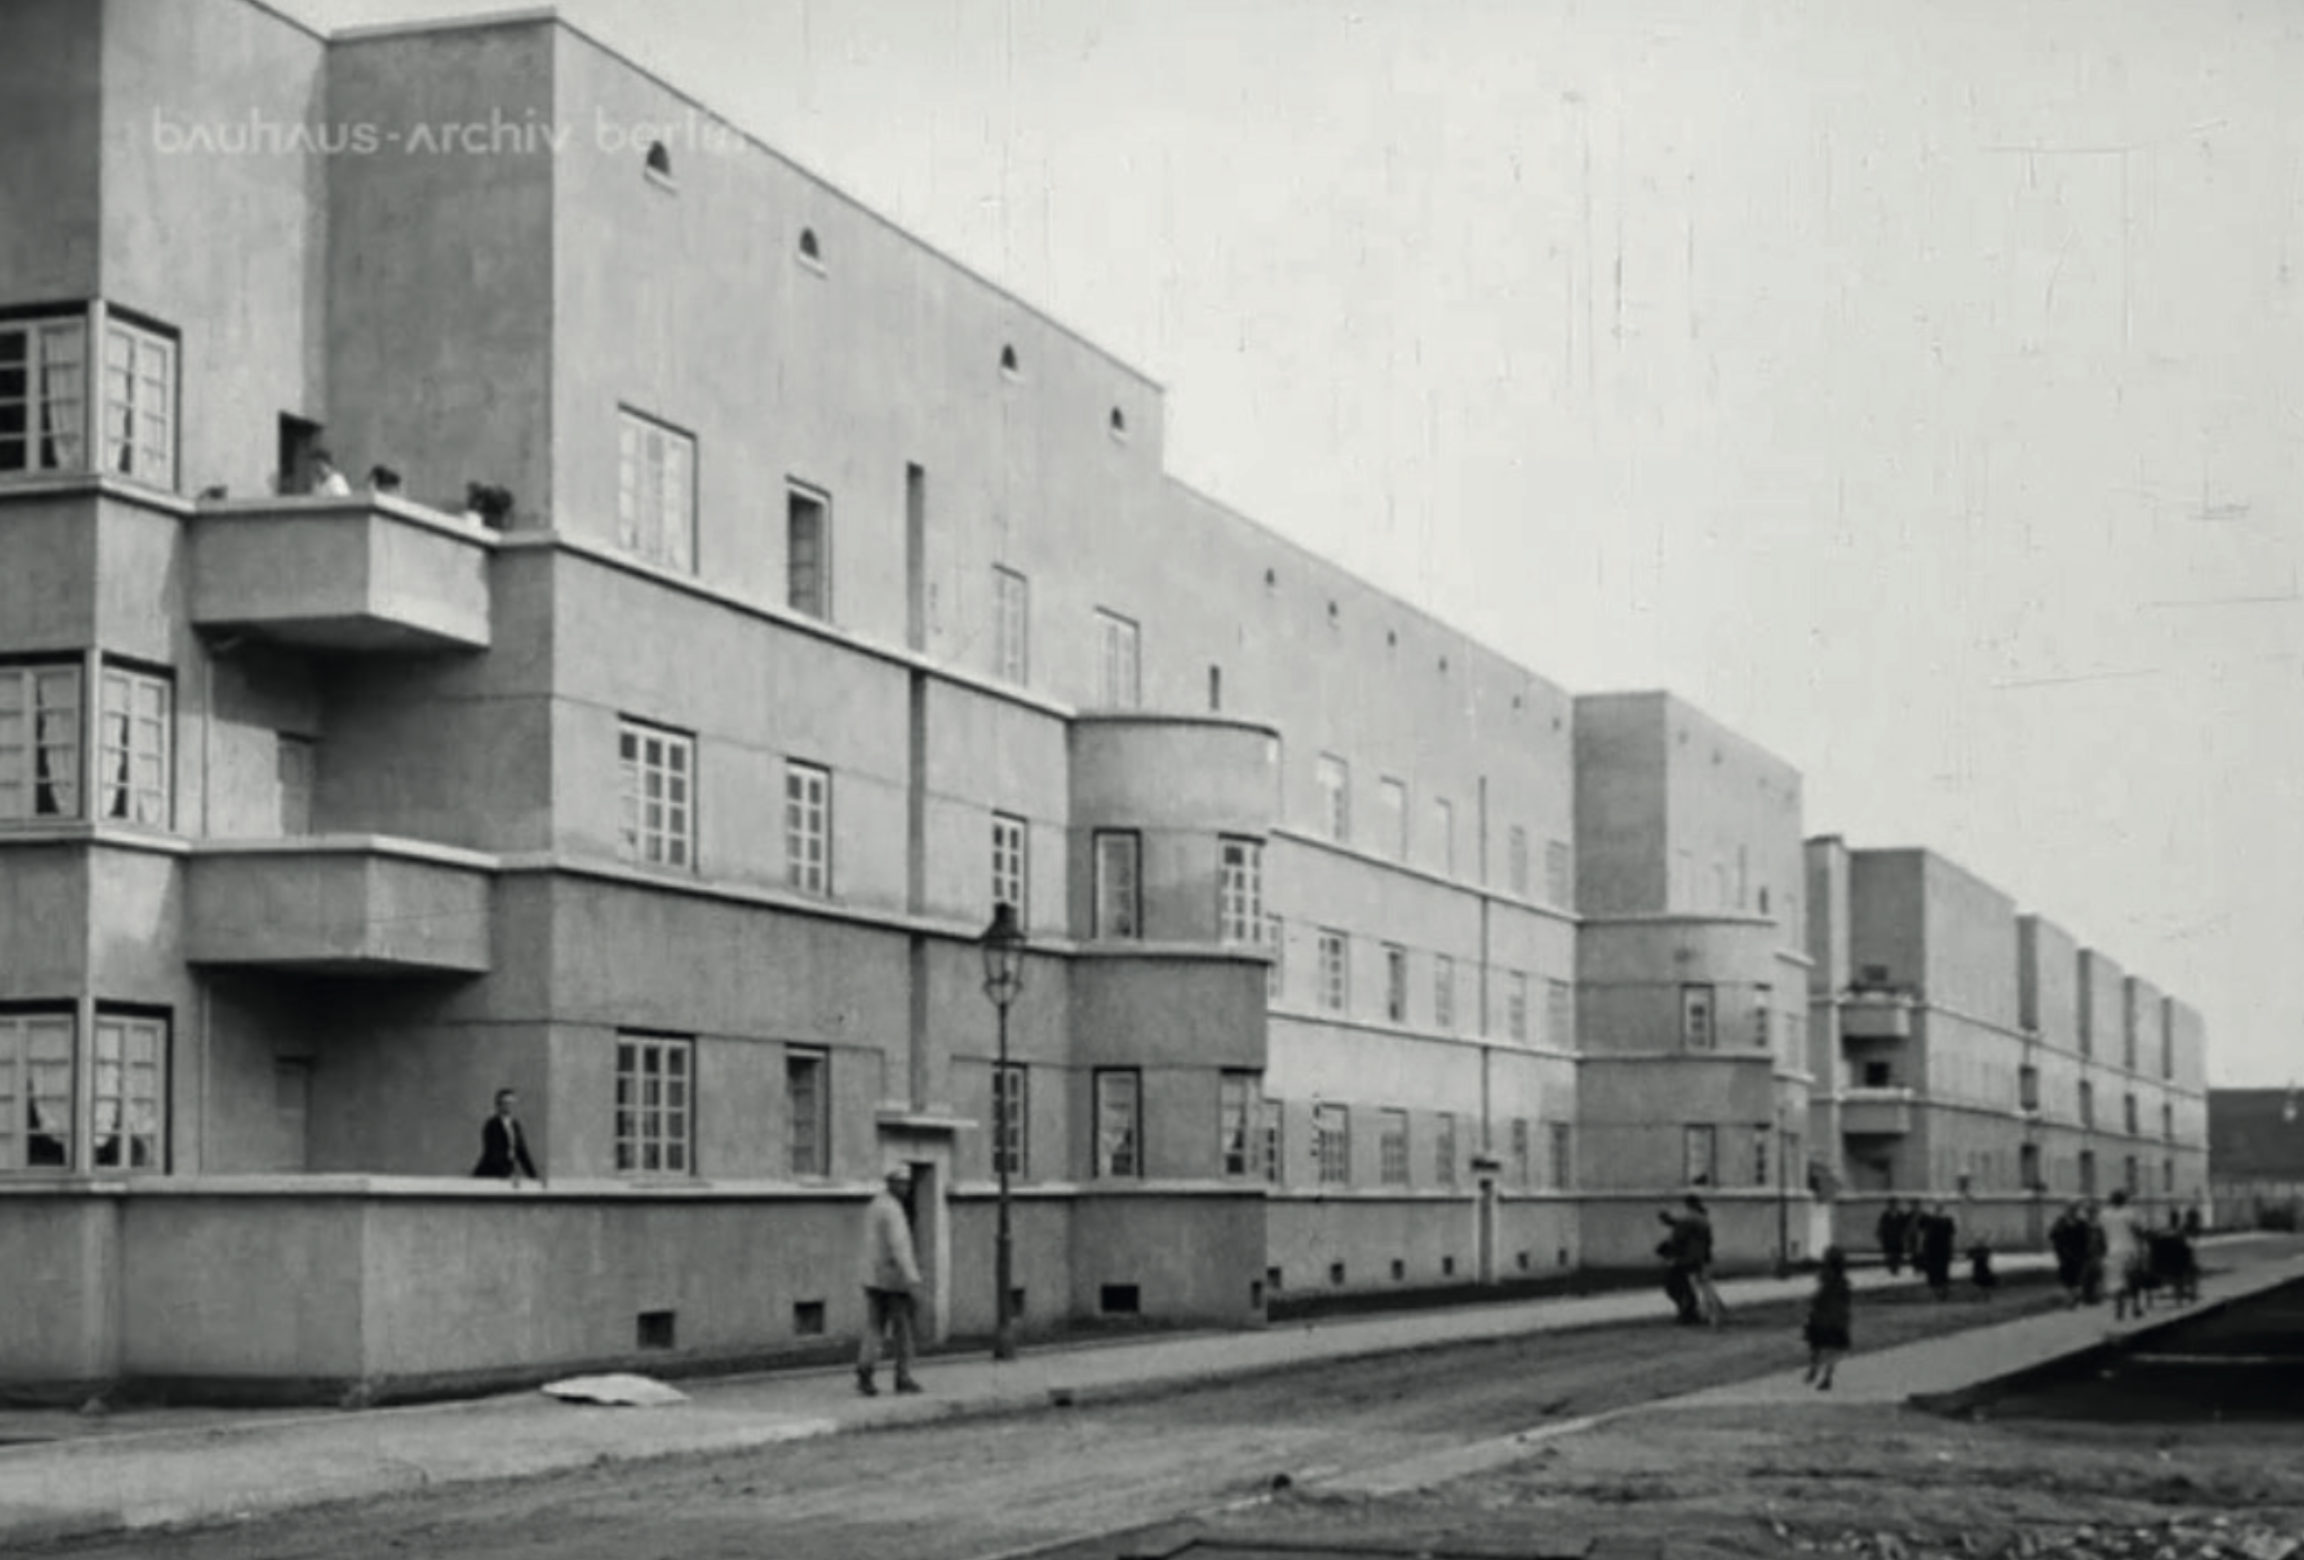 After the construction is completed, more green areas should be developed between the housing blocks! Light and Air for every apartment unit! Image from: How to live healthily and economically? Film series in four episodes by Walter Gropius and the Humboldt film GMBH, 1926.